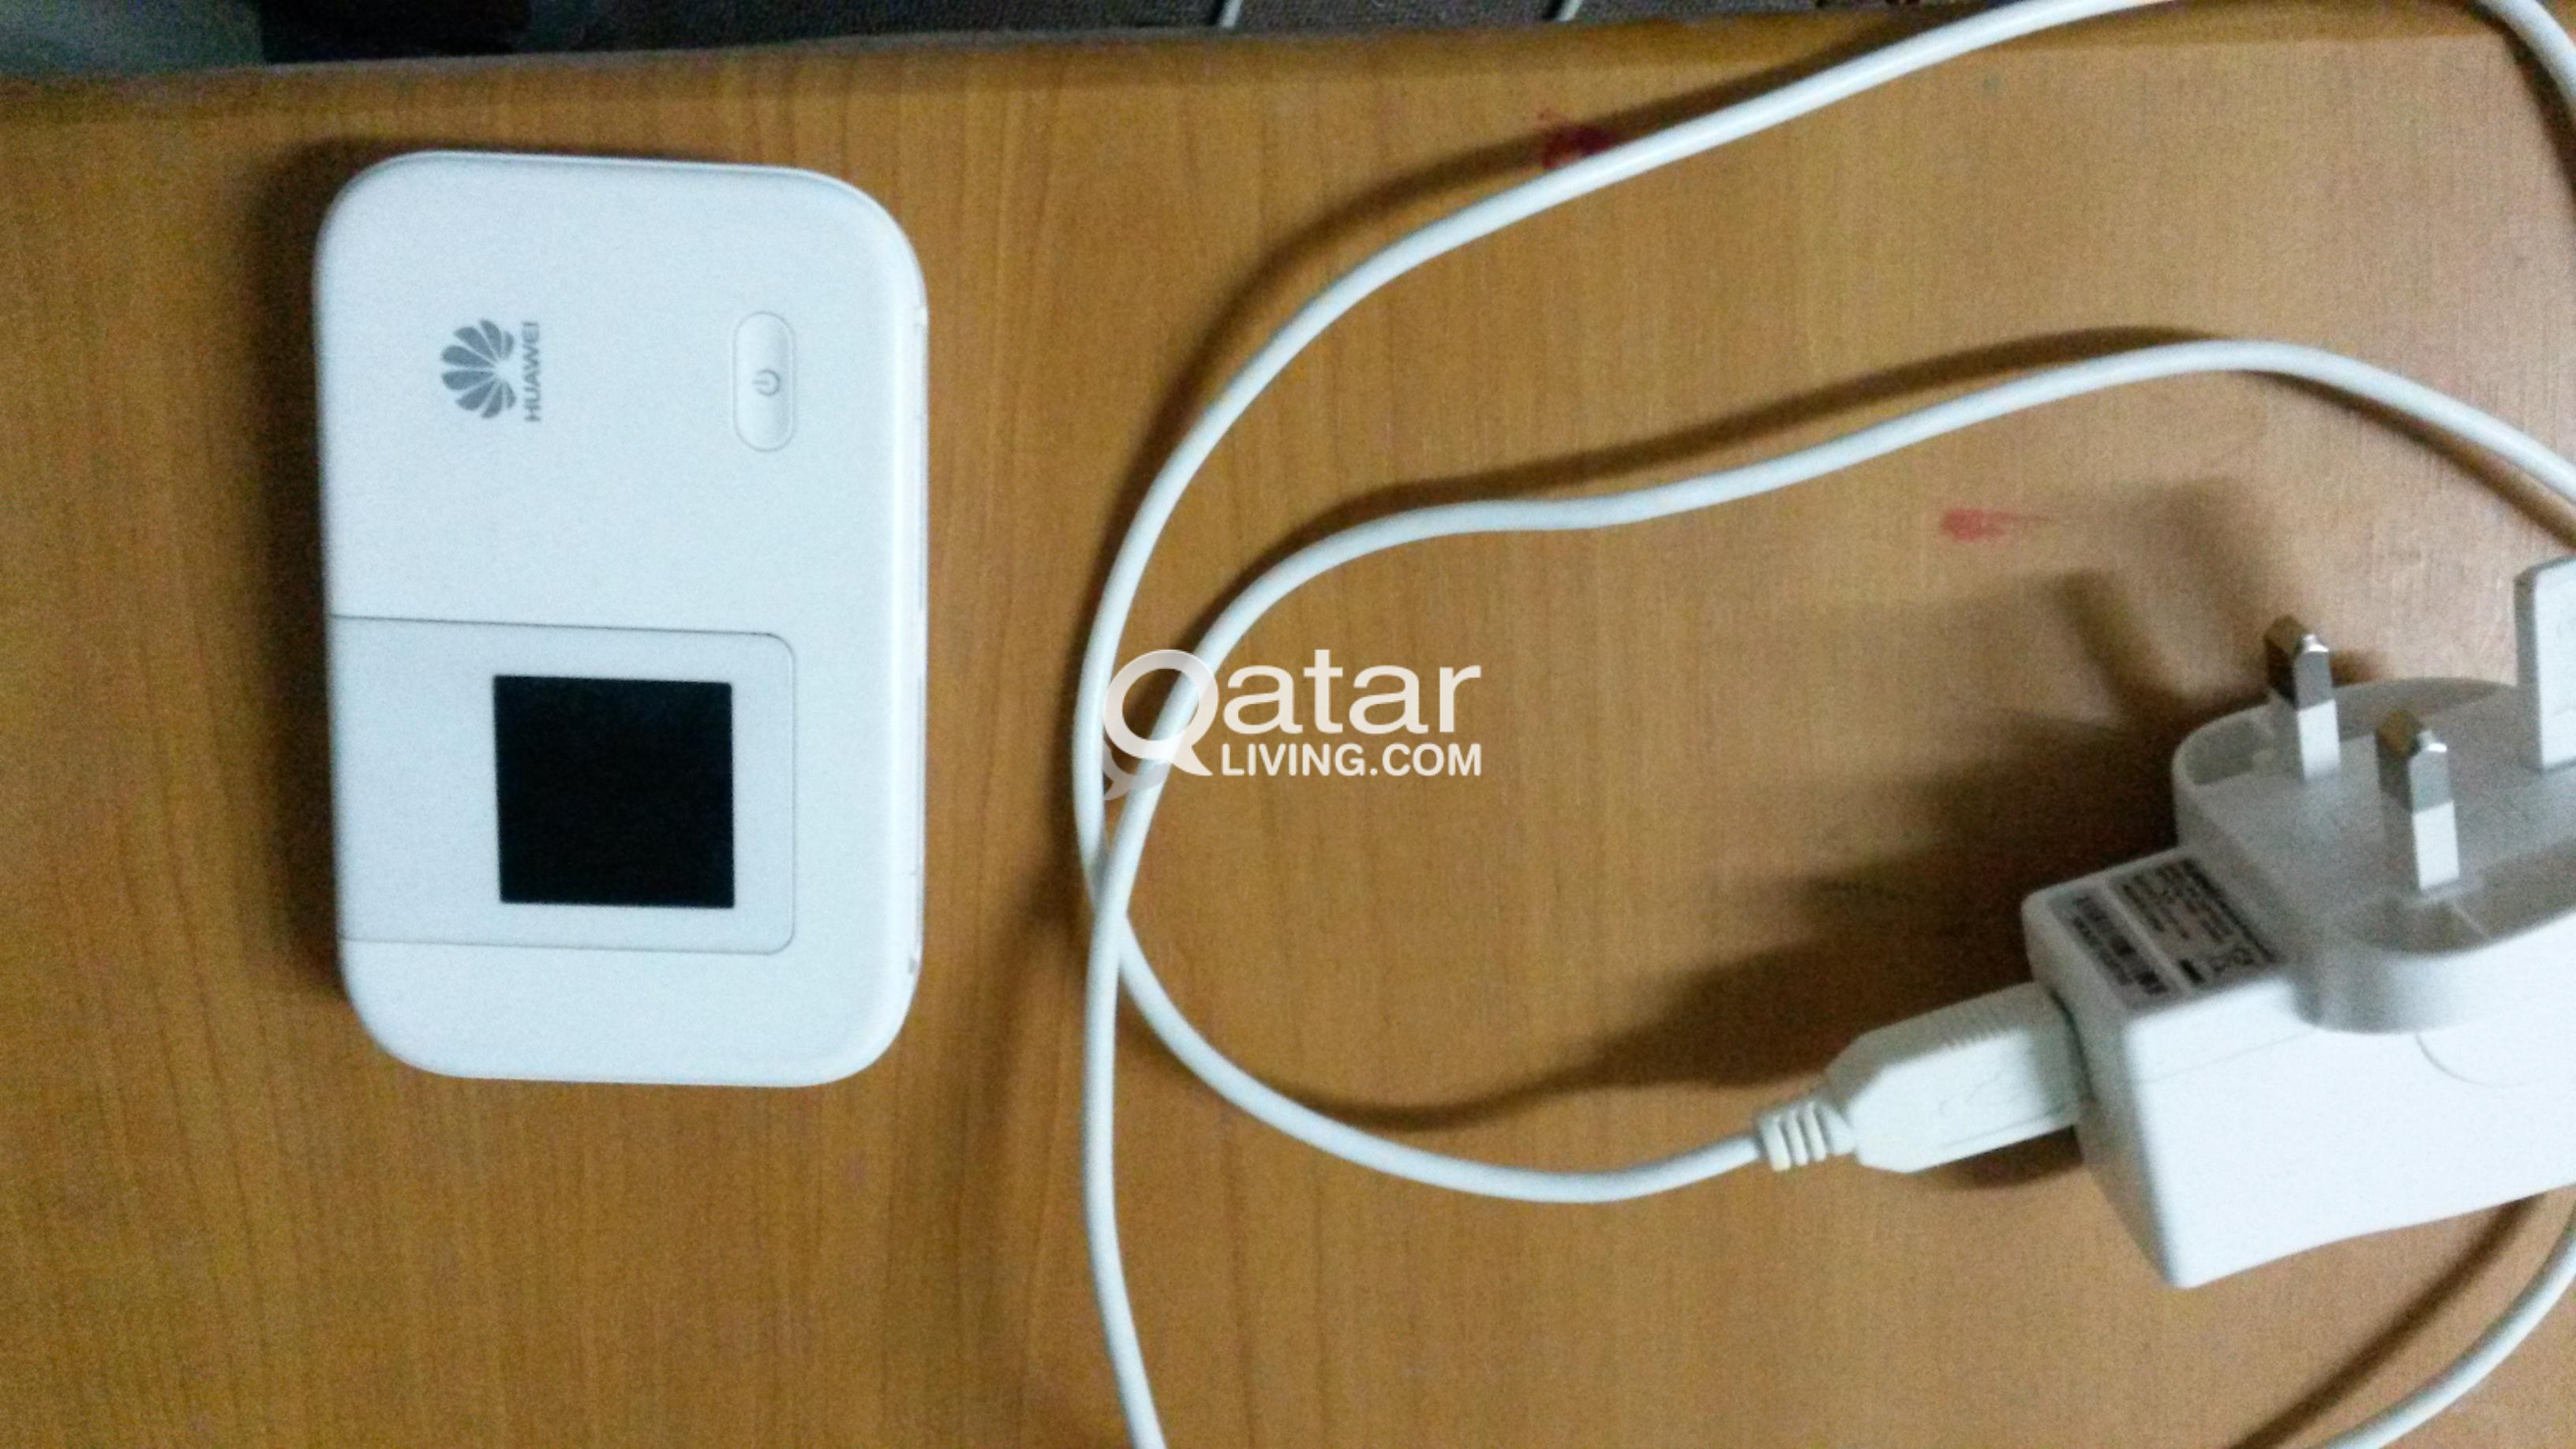 Huawei 4G Mobile WiFi Device Router | Qatar Living